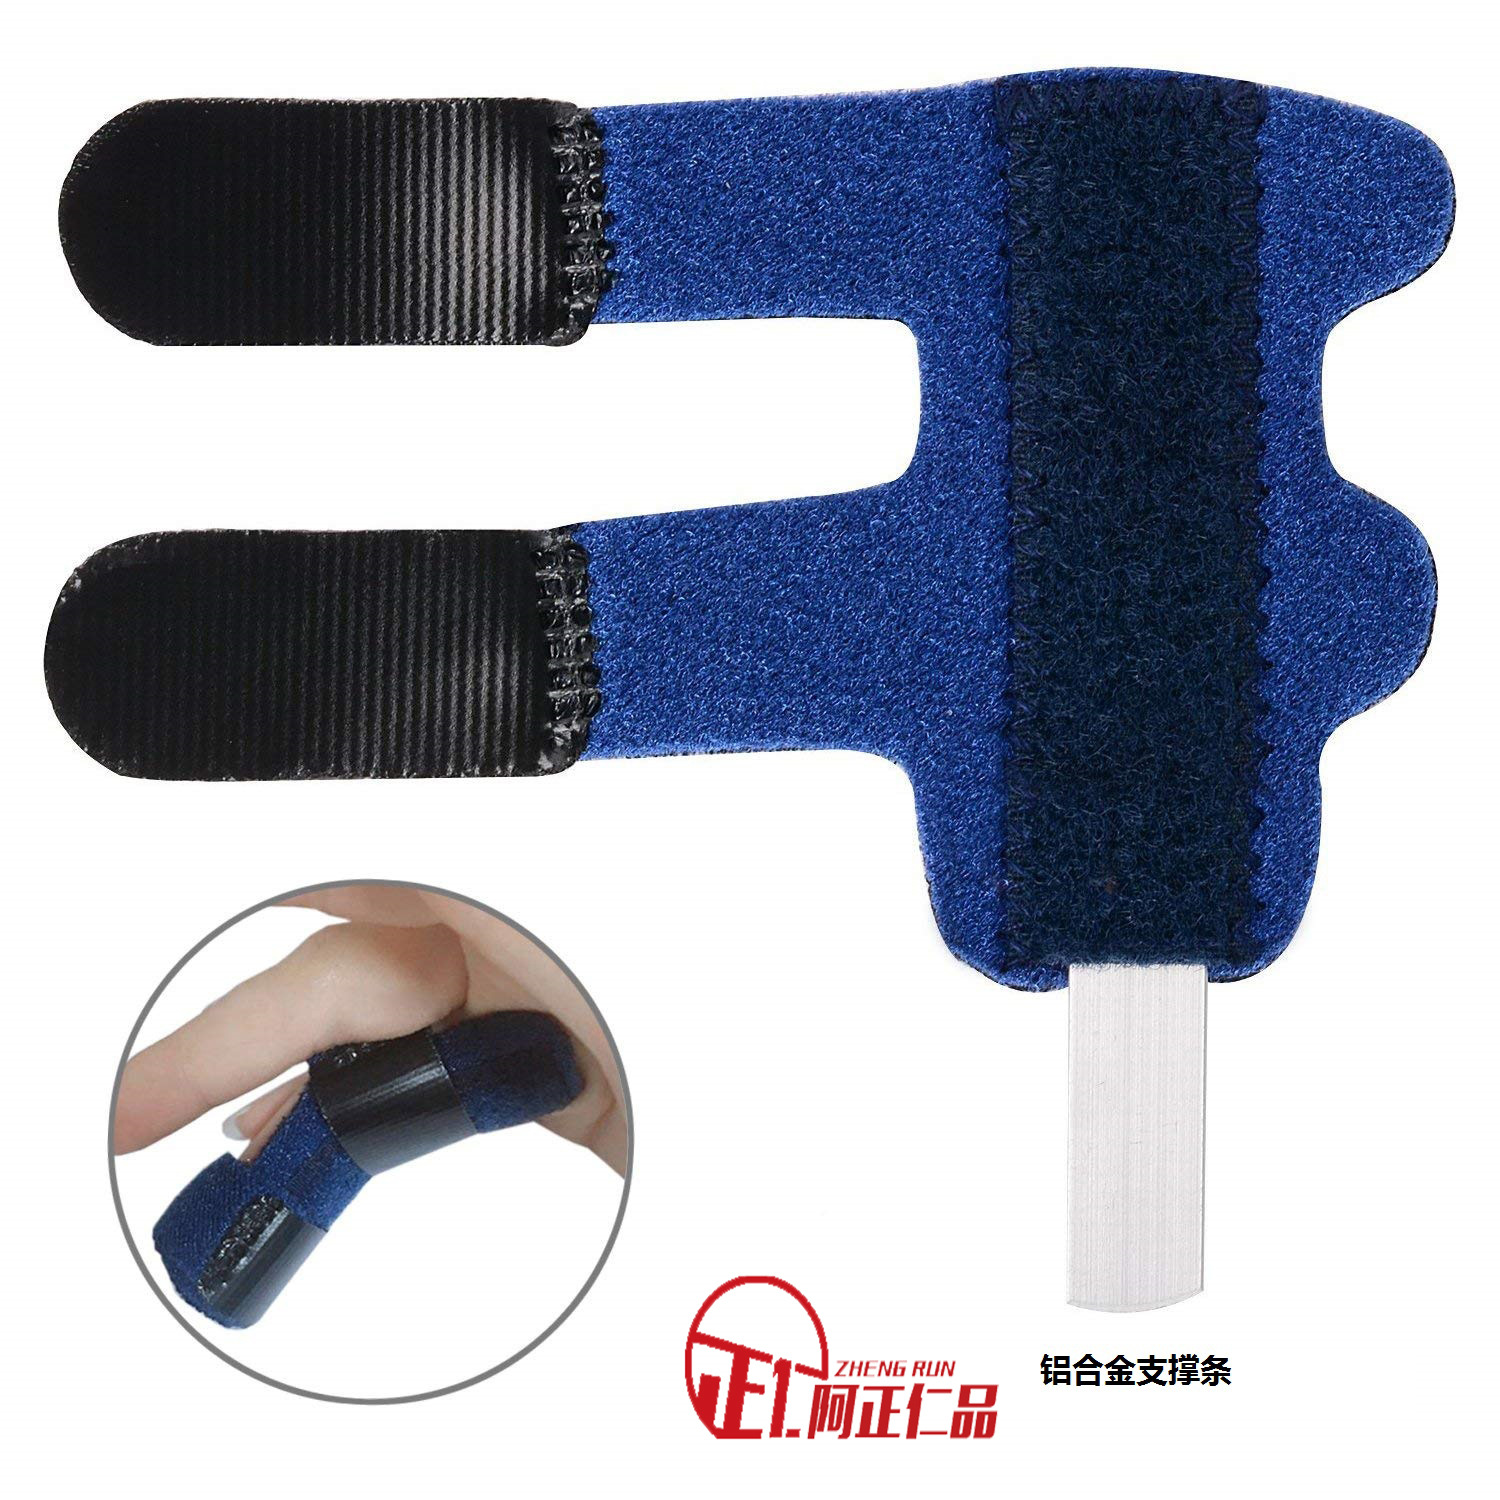 Finger Fixed Set Of Finger Fracture Plywood Aluminium Plate Support Finger Fixed Device Bone And Joint Fixed Medical Care Protec